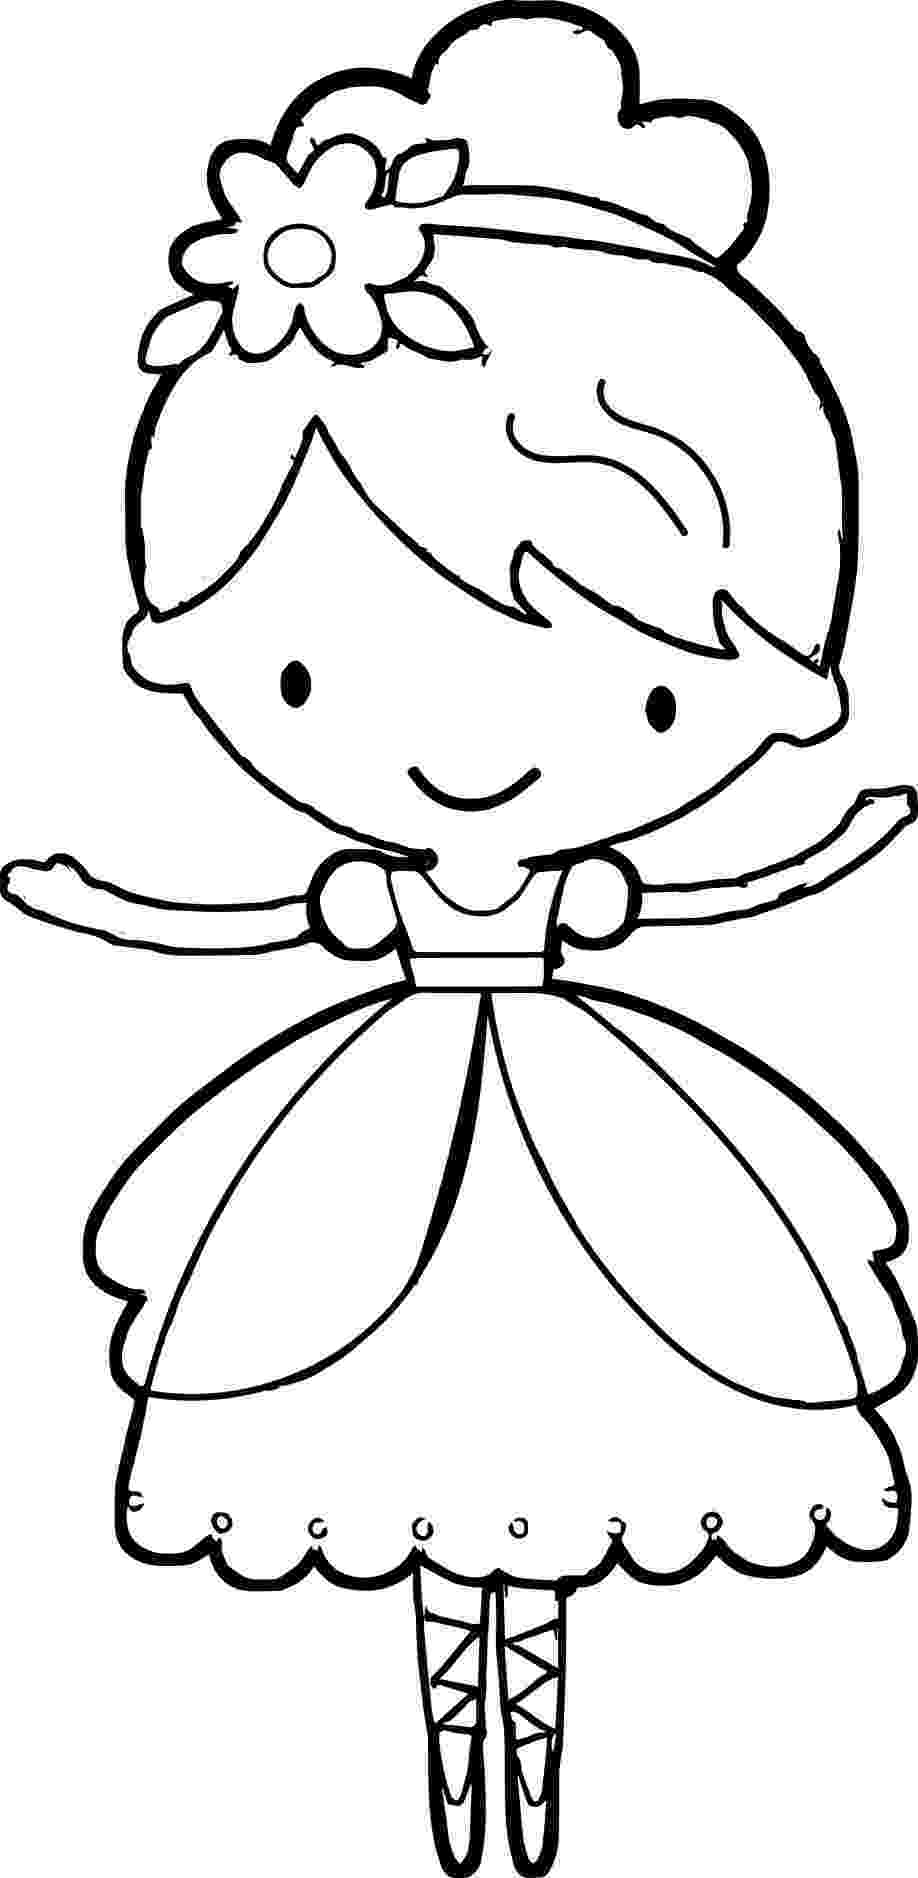 coloring pages ballerina ballerina shoes drawing at getdrawingscom free for ballerina pages coloring